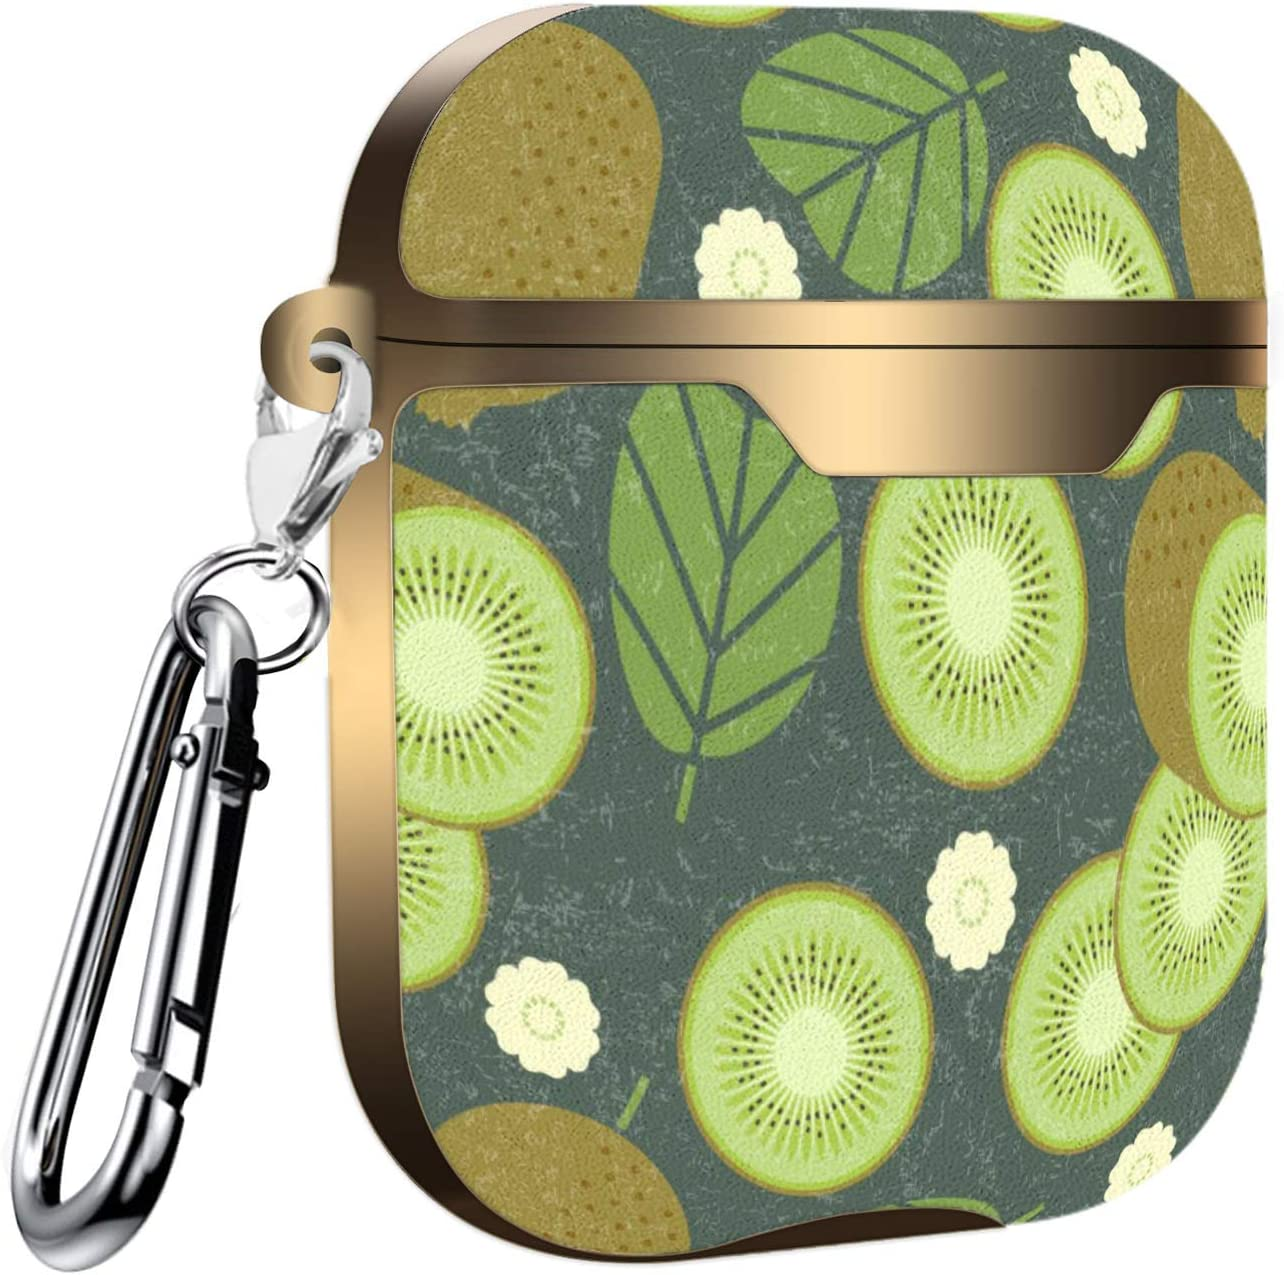 Slim Form Fitted Printing Pattern Cover Case with Carabiner Compatible with Airpods 1 and AirPods 2 Pattern with Kiwi Fruit